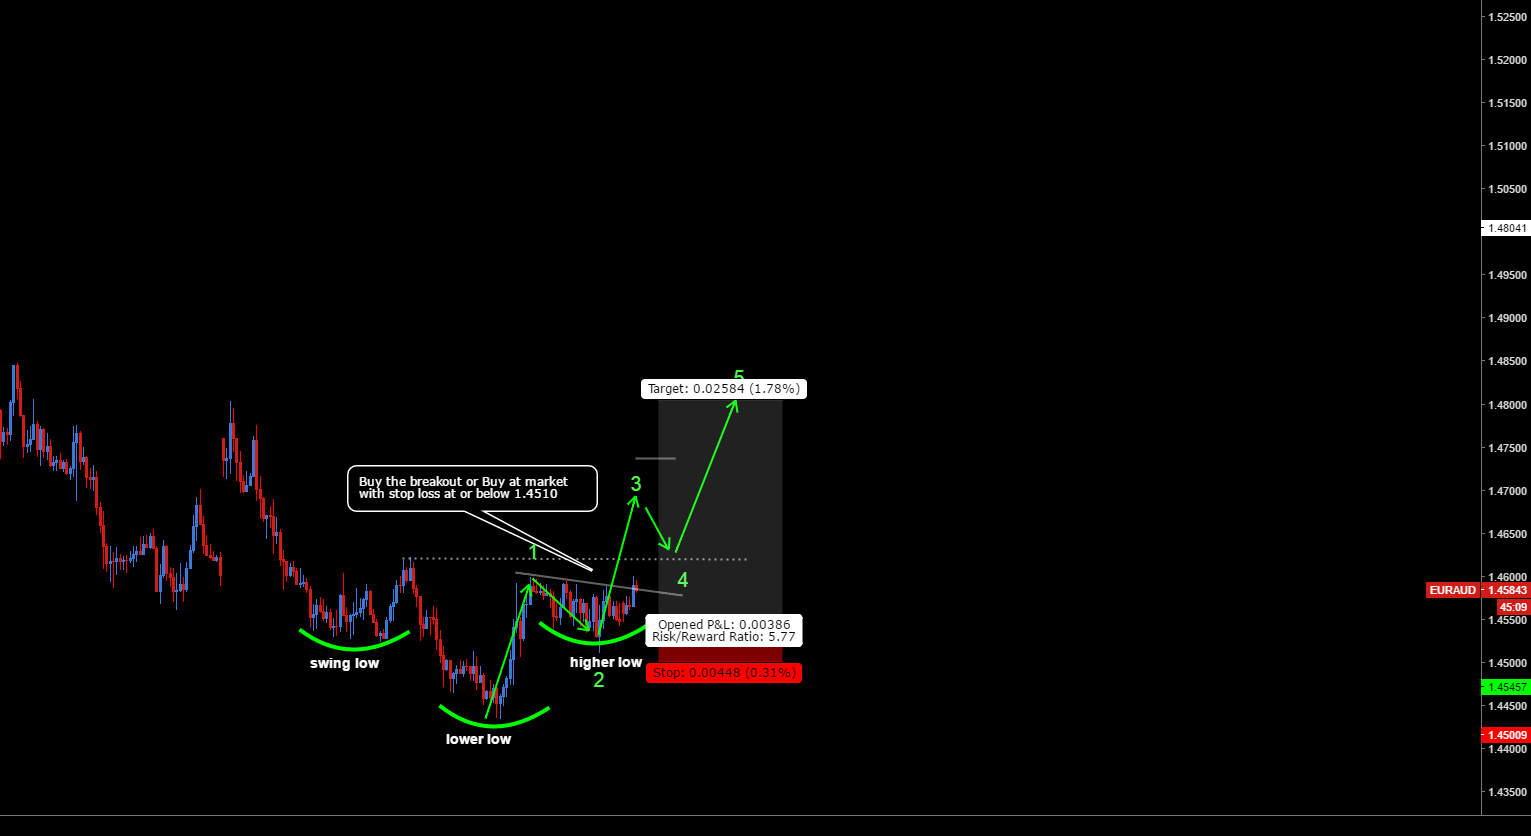 EURAUD 200 Pips - Potential for 500%+ ROI 1:5 Risk Reward